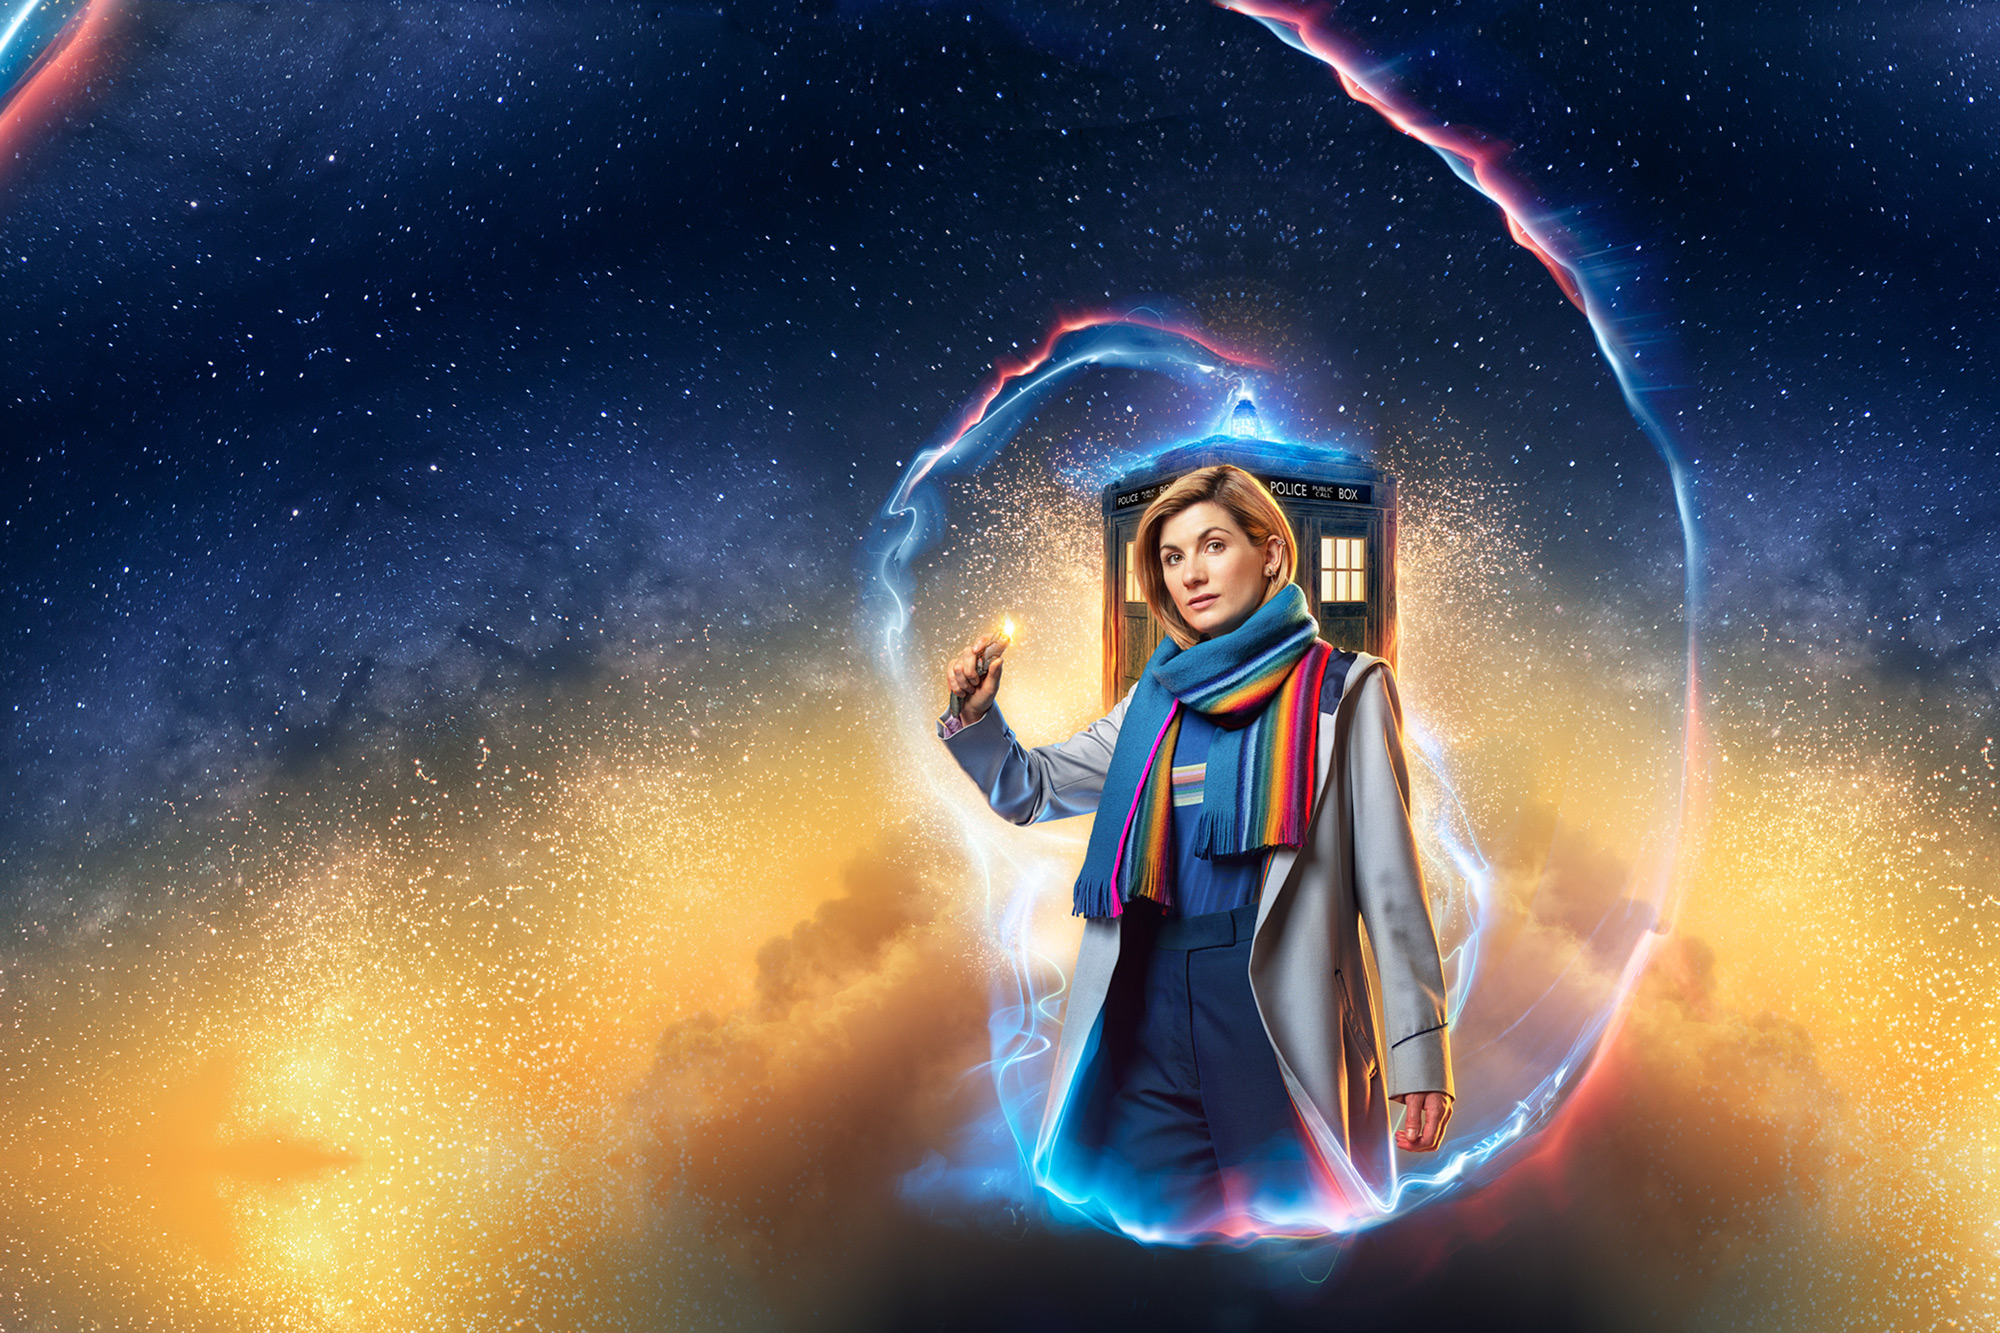 The Doctor Who New Year Special is showing today. It was great fun and a real privilege to photograph Jodie Whittaker and the cast for the promotional push leading up to this much anticipated event.